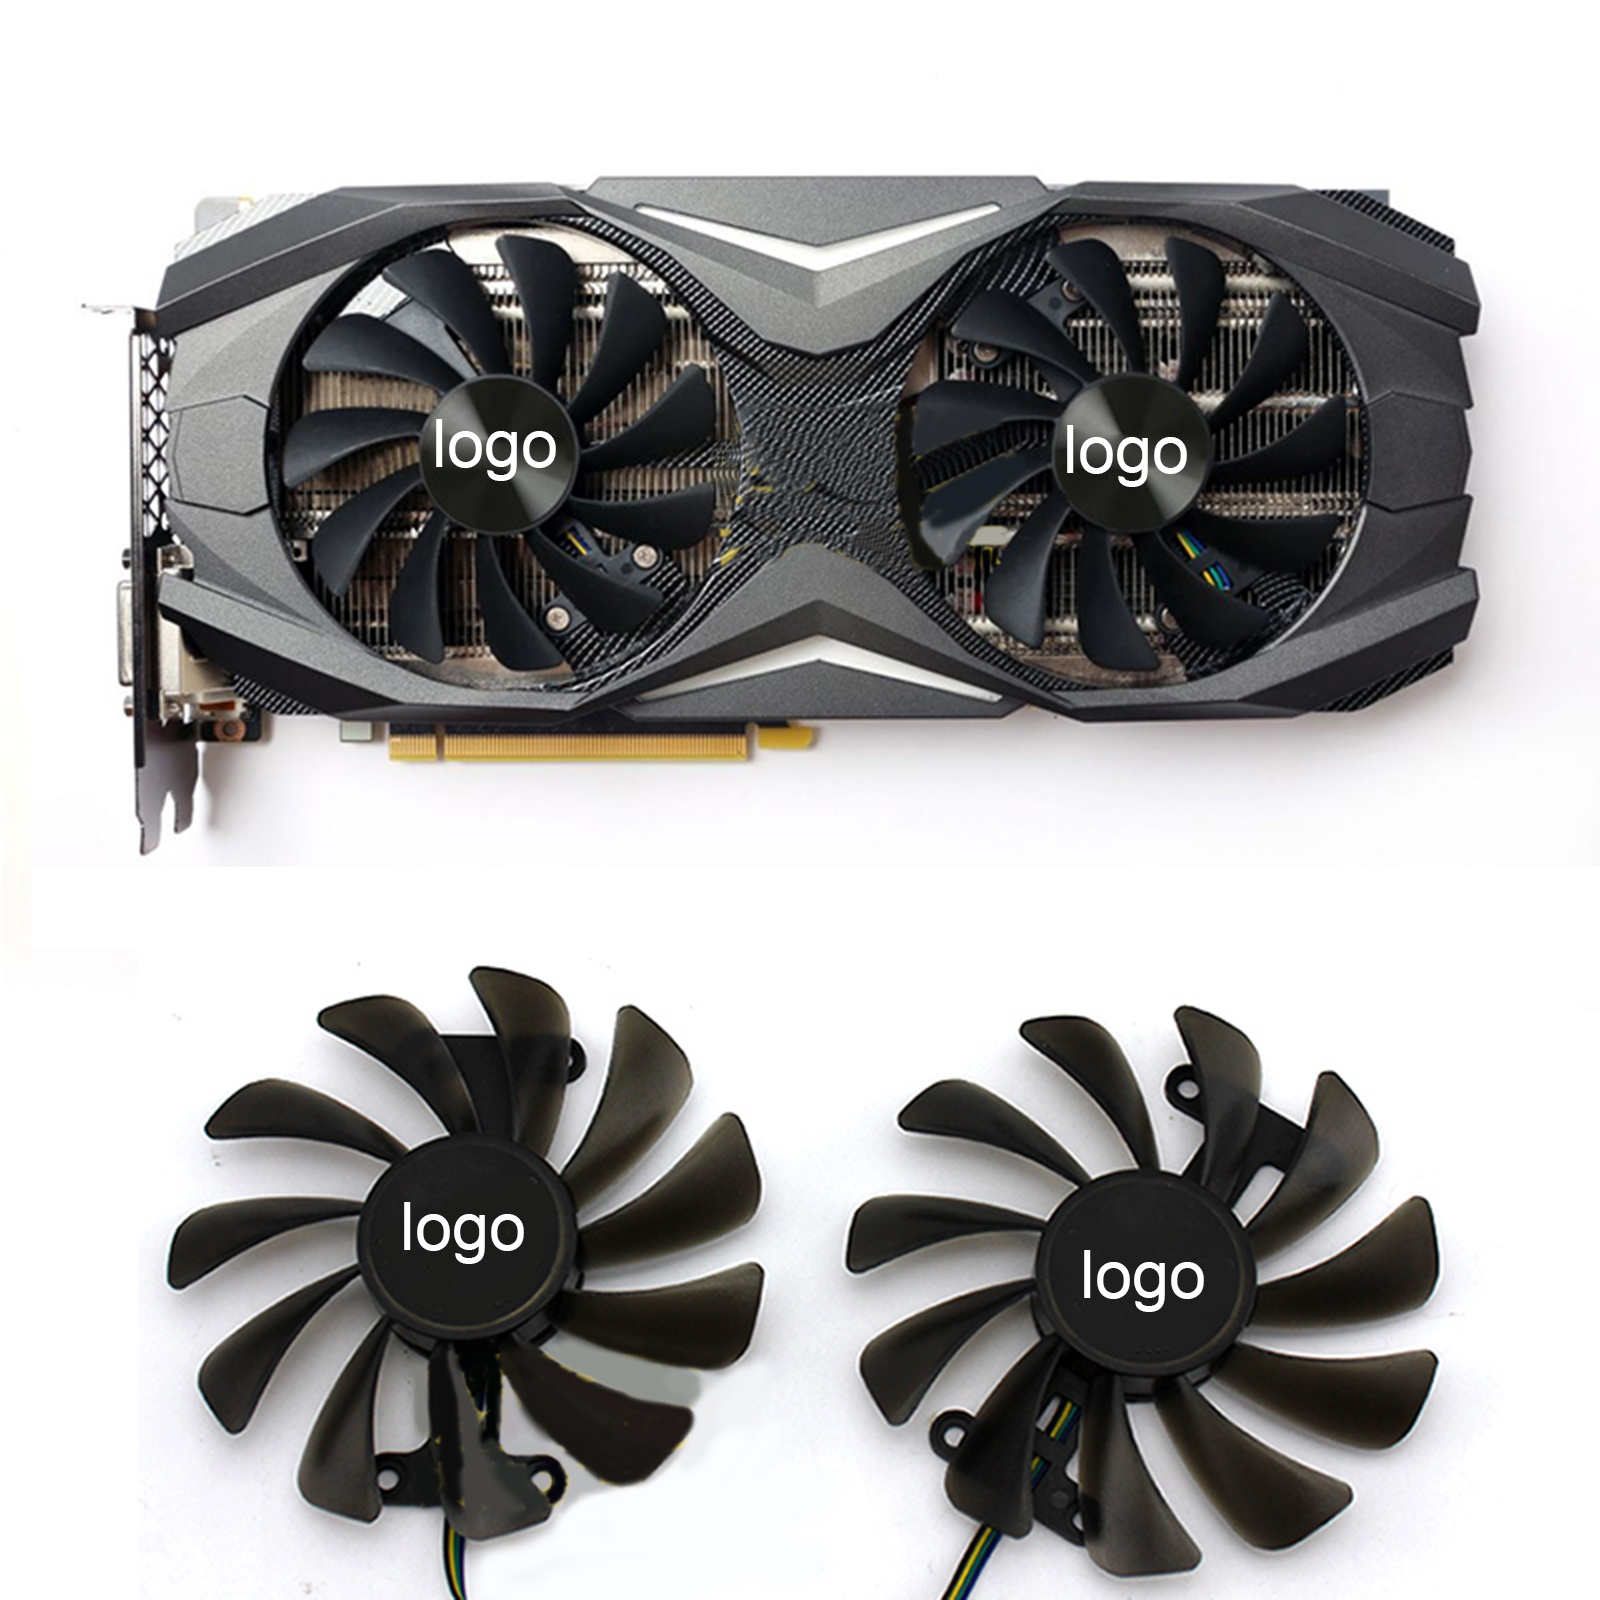 95mm Cooling Fan for ZOTAC GeForce GTX 1080 1070 AMP Edition GPU Graphics Card image